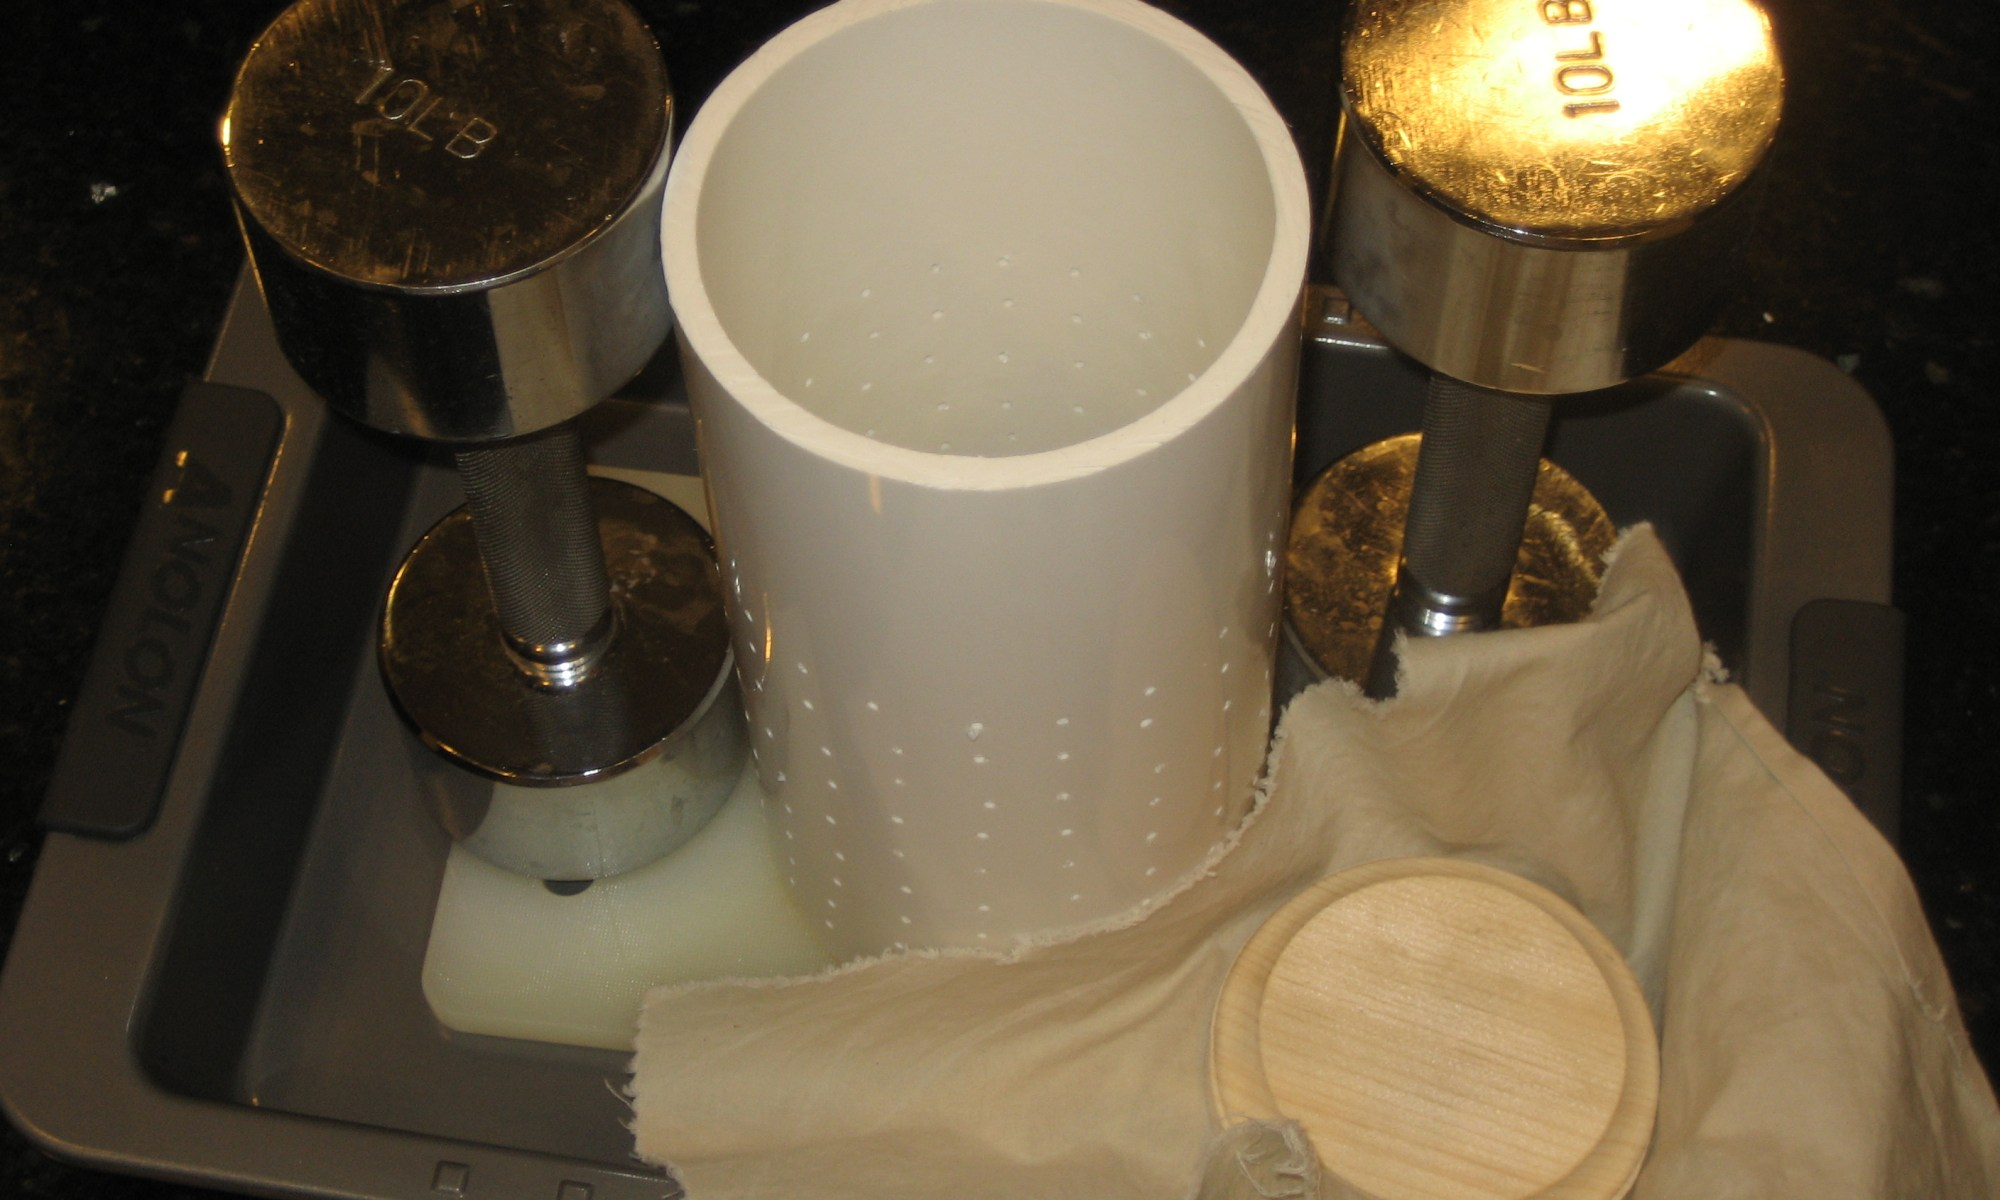 Home Made 4 in, 103 mm Drilled PVC Hoop, Wooden Follower With Cheesecloth Wrap, & Improvised Weights - CheeseForum.org